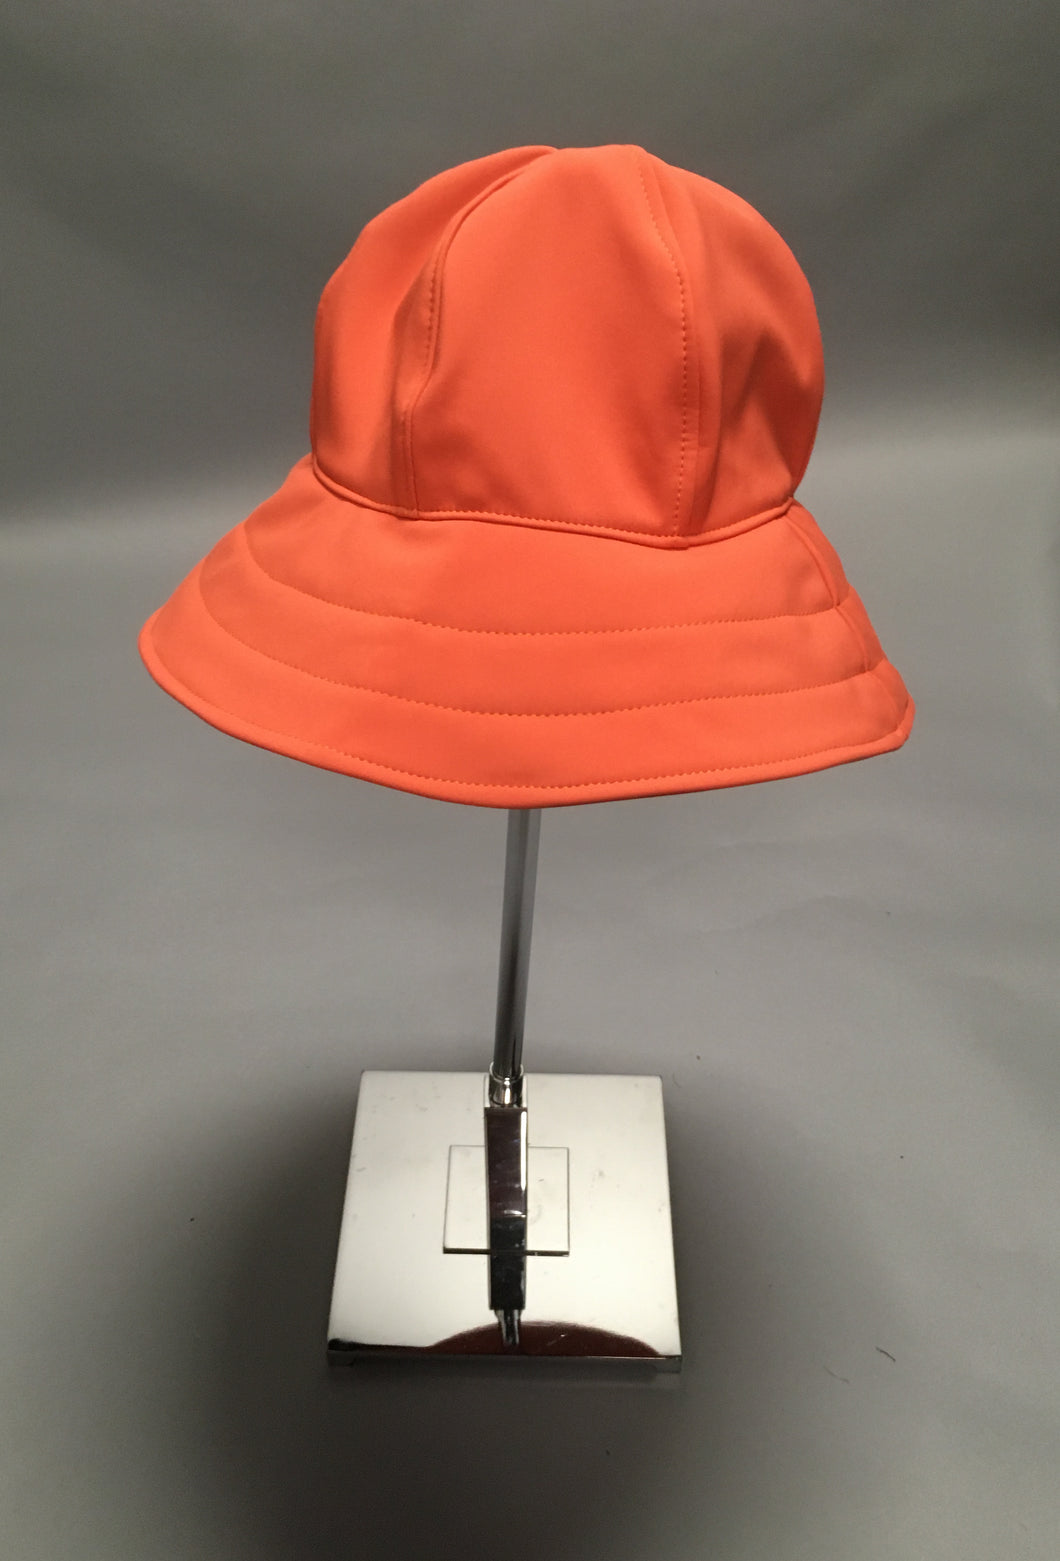 *Coral Waterproof Black Fleece Lined Rain Hat $50 (RH 0919A)